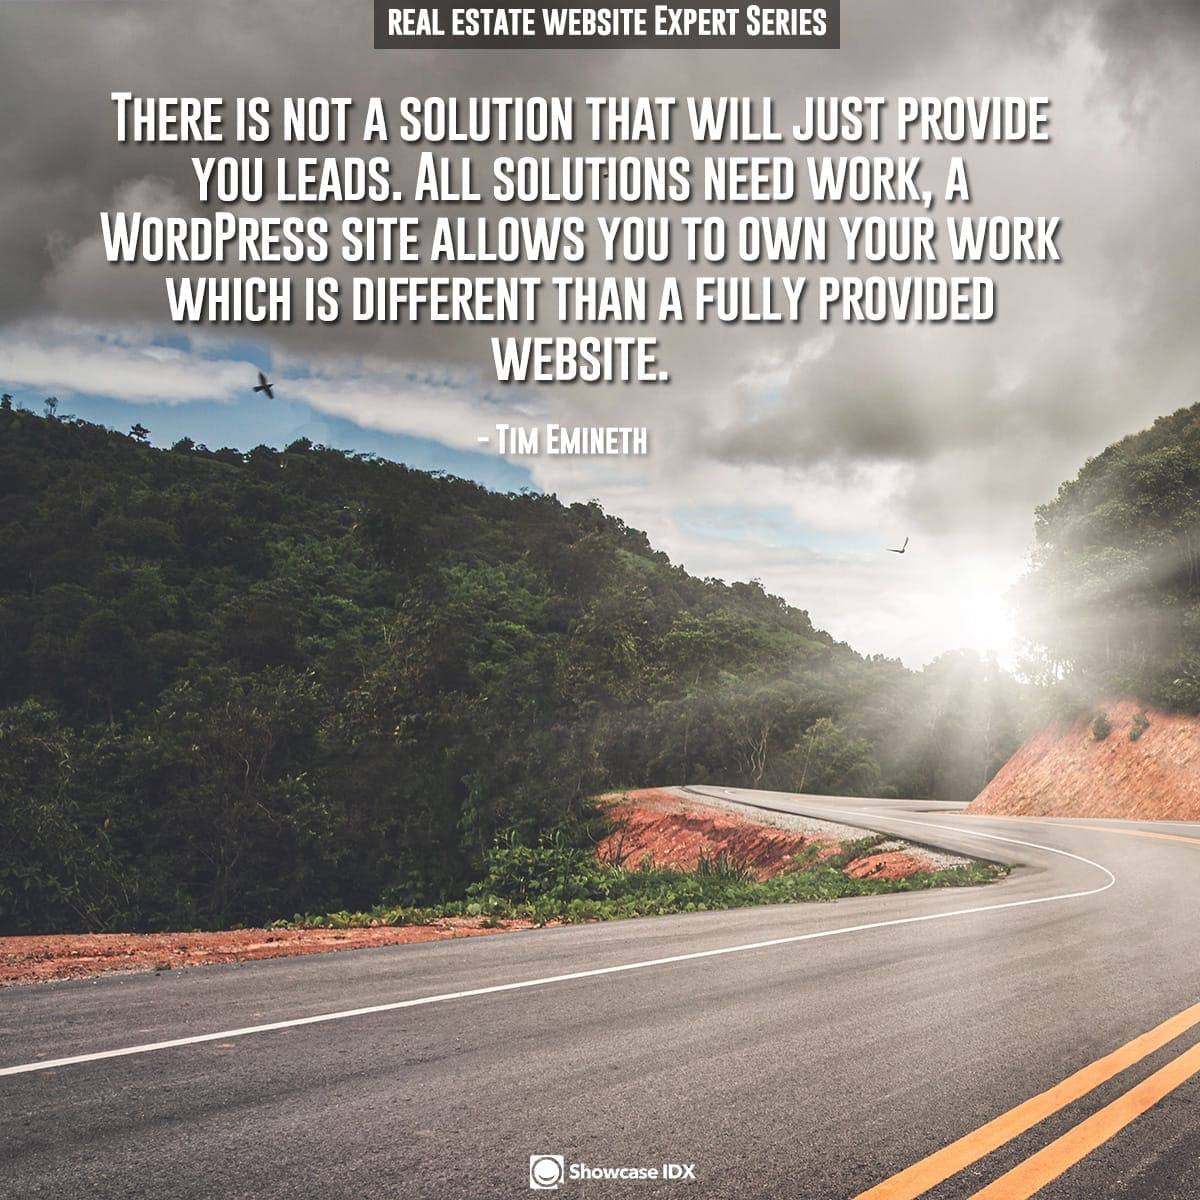 There is not a solution that will just provide you leads. All solutions need work, a WordPress site allows you to own your work which is different than a fully provided website.